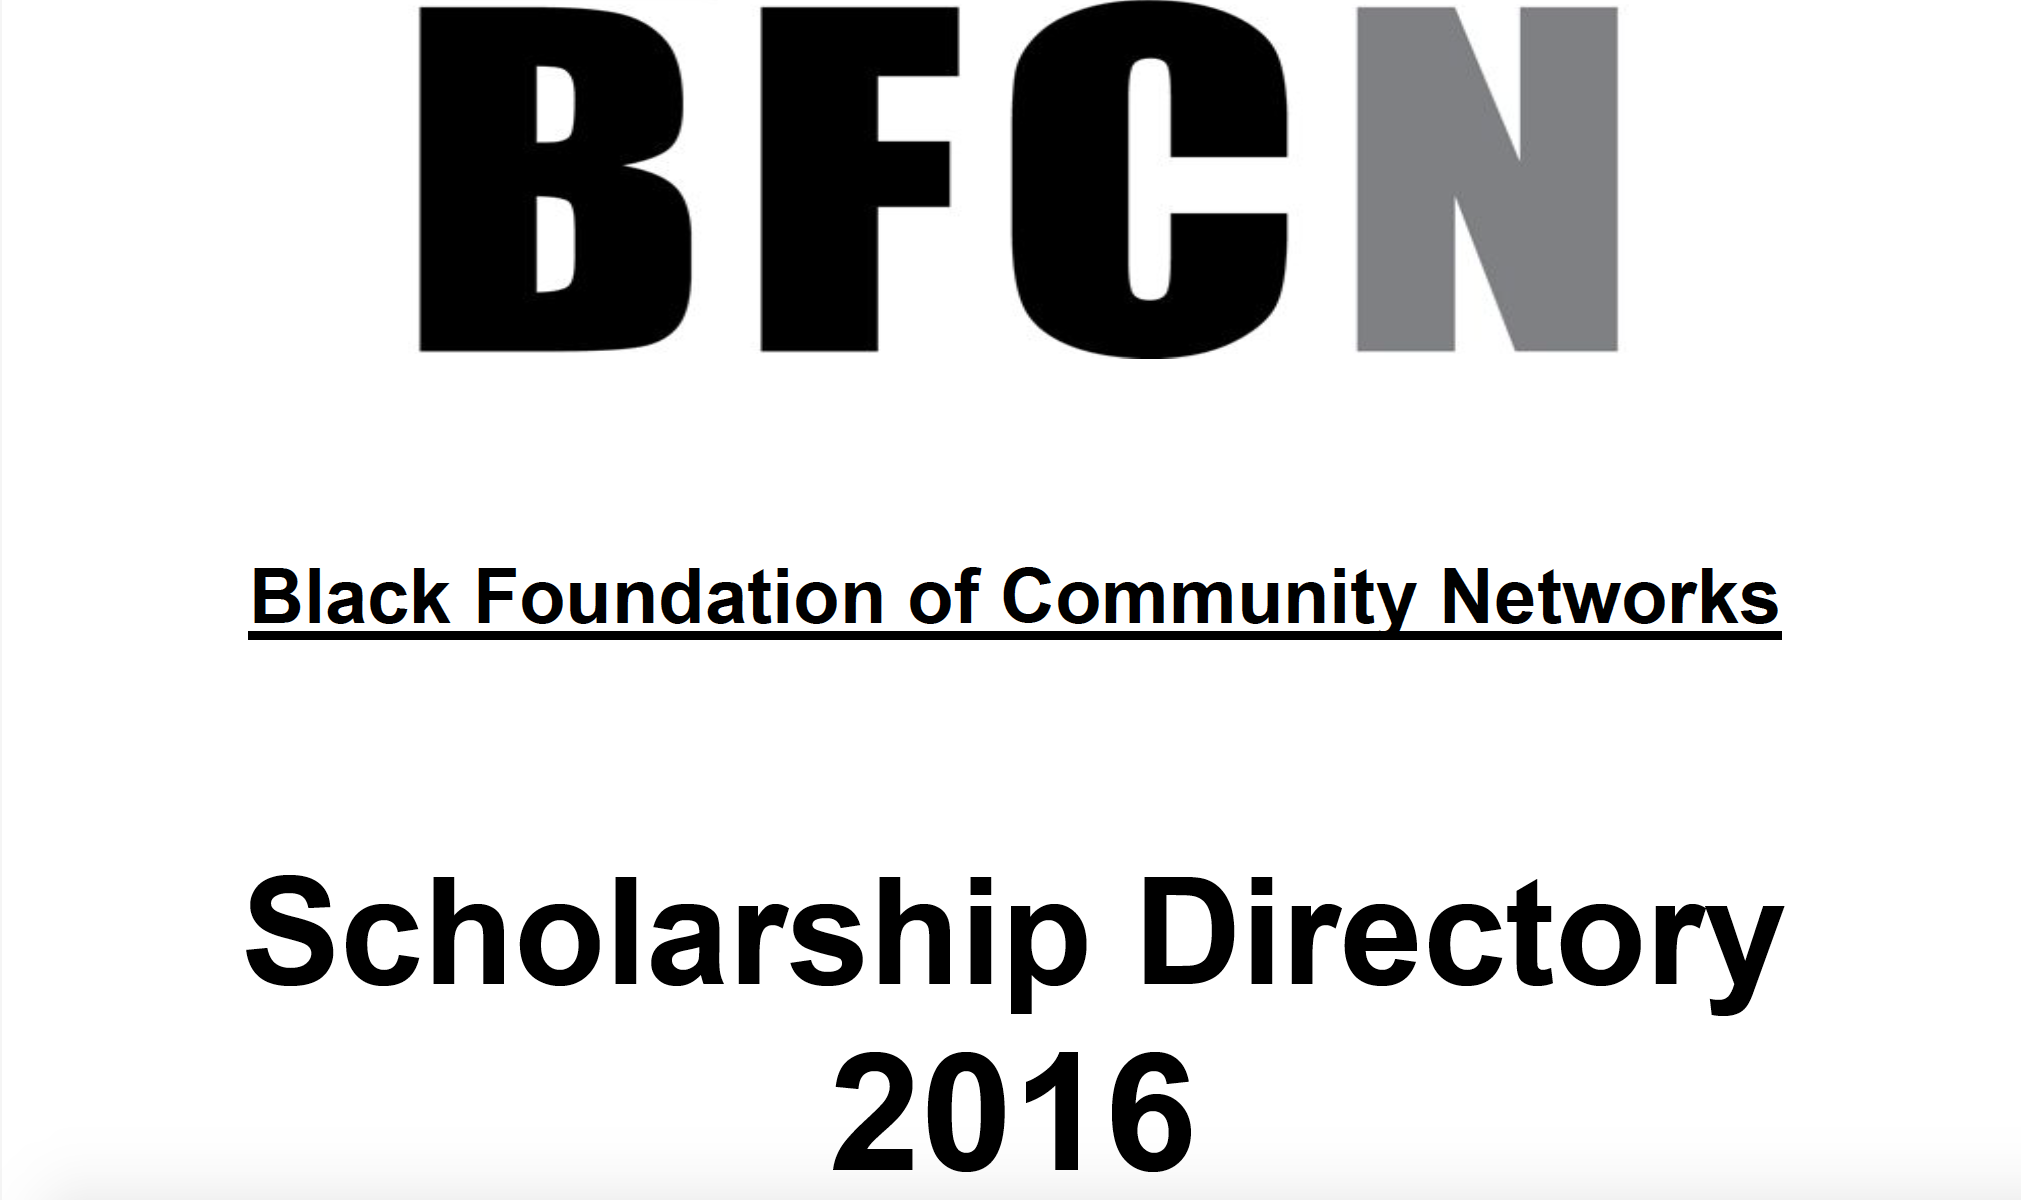 Black Foundation of Community Networks Scholarship Directory 2016